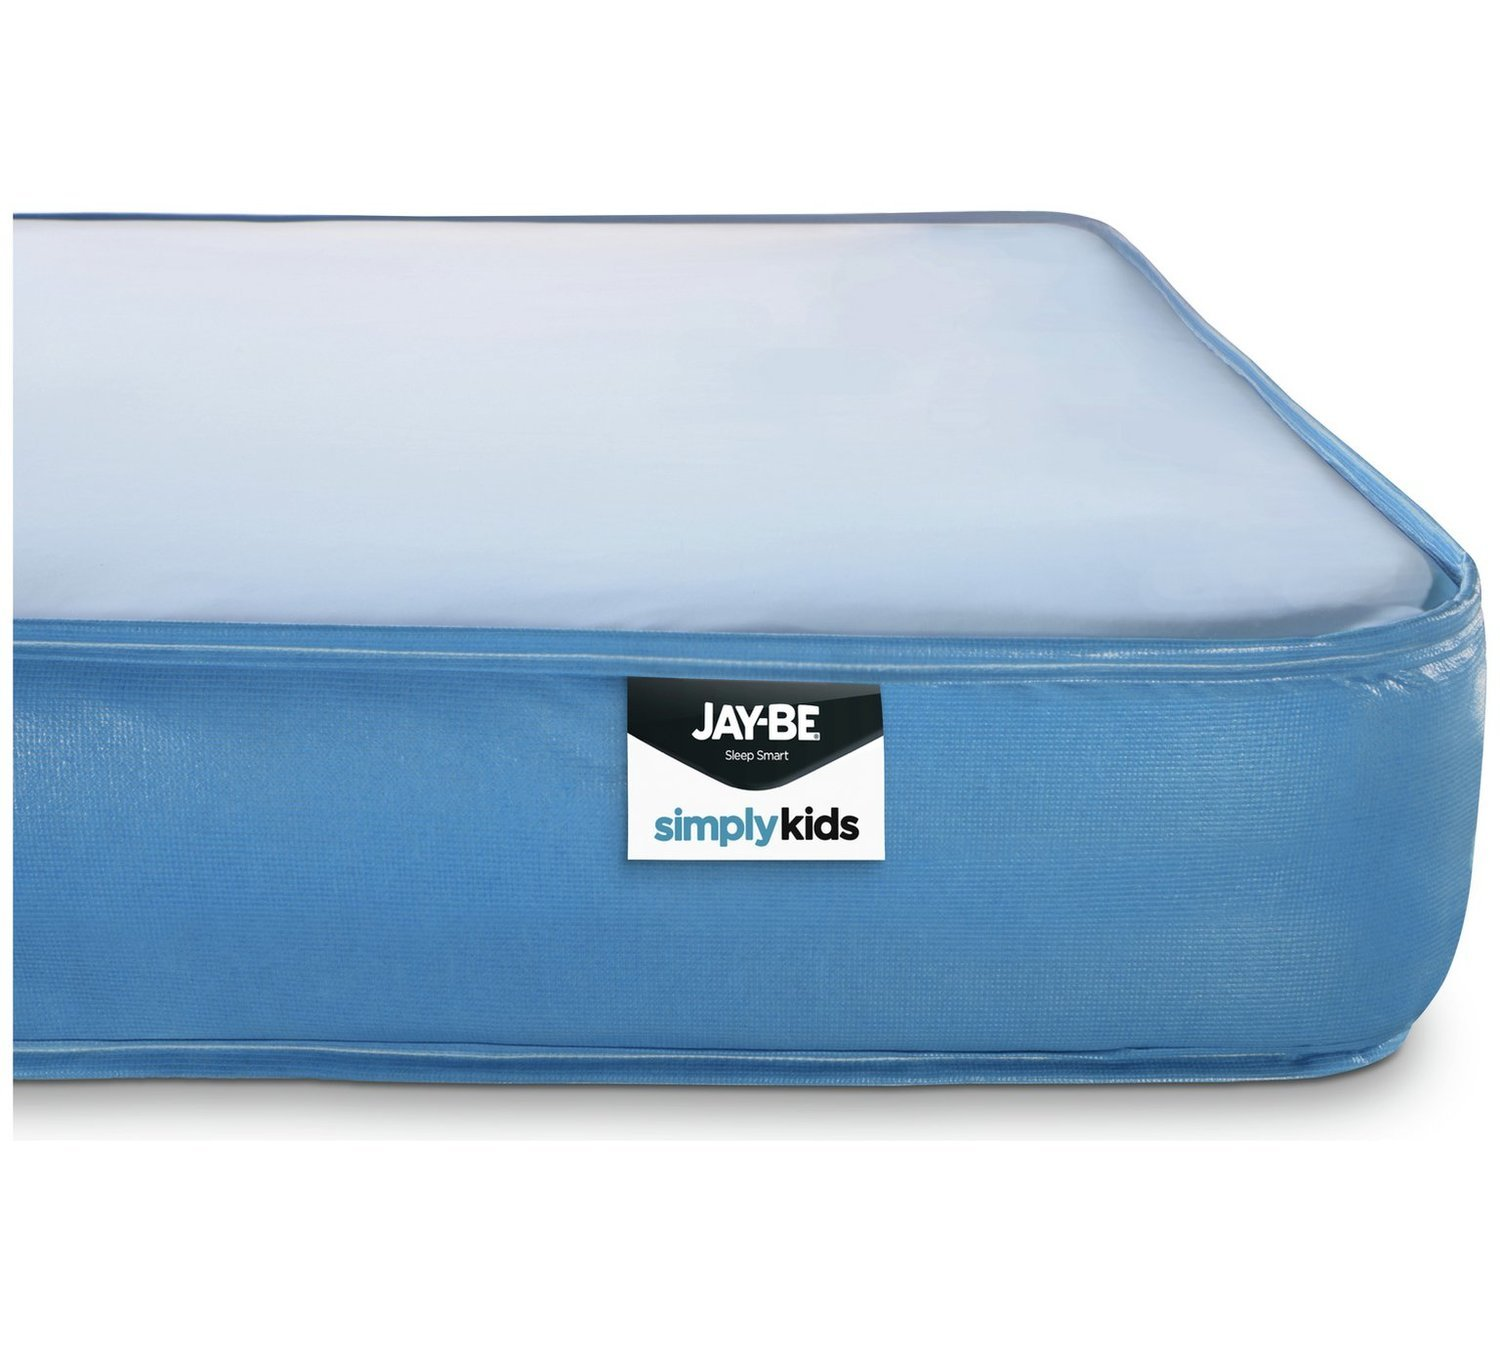 Jay-Be Simply Kids Waterproof Sprung Anti Bacterial Mattress